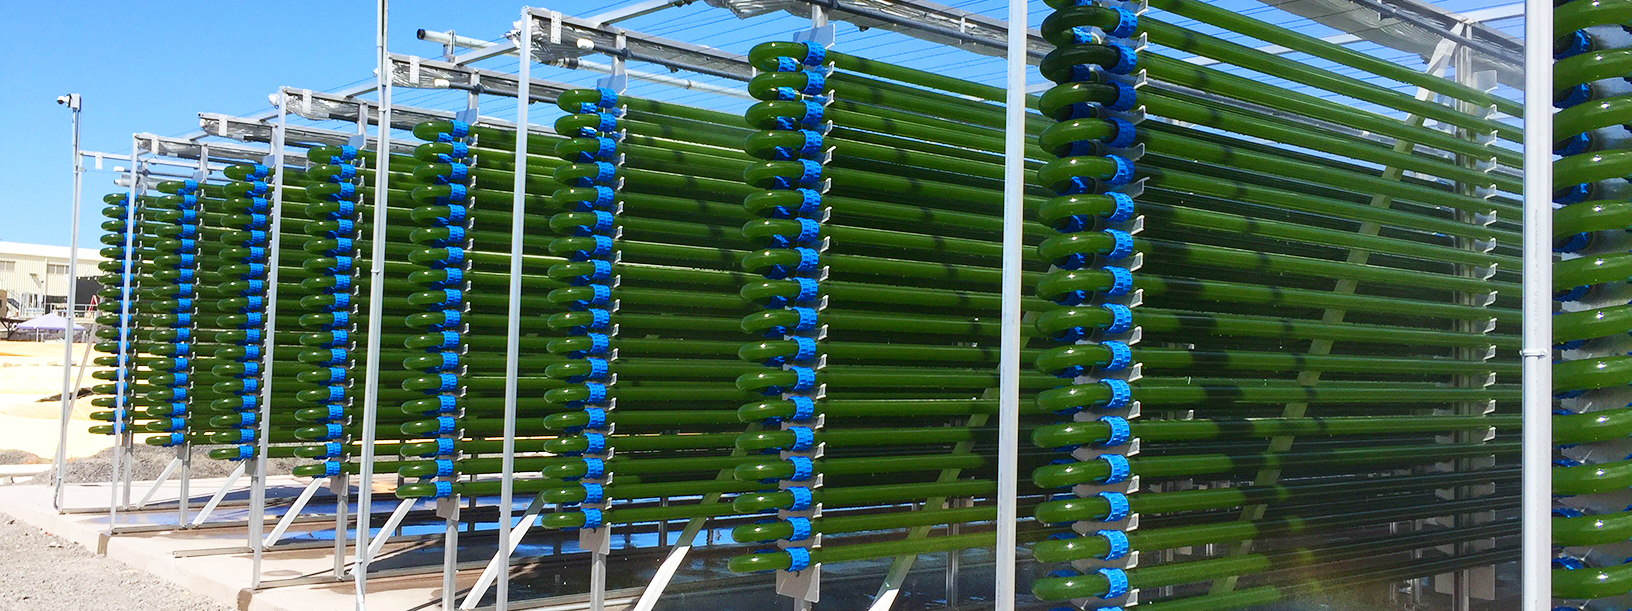 variconaqua in addition Freon Vs Peltier Chillers moreover Top 5 Good Morning Facebook Cover Photos furthermore Projektwoche 2012 Miteinander further Product 5c 20tr Air Cooled Glycol Water Chiller Used In Chocolate Mold Cooling Processing Industry 29361. on chillers